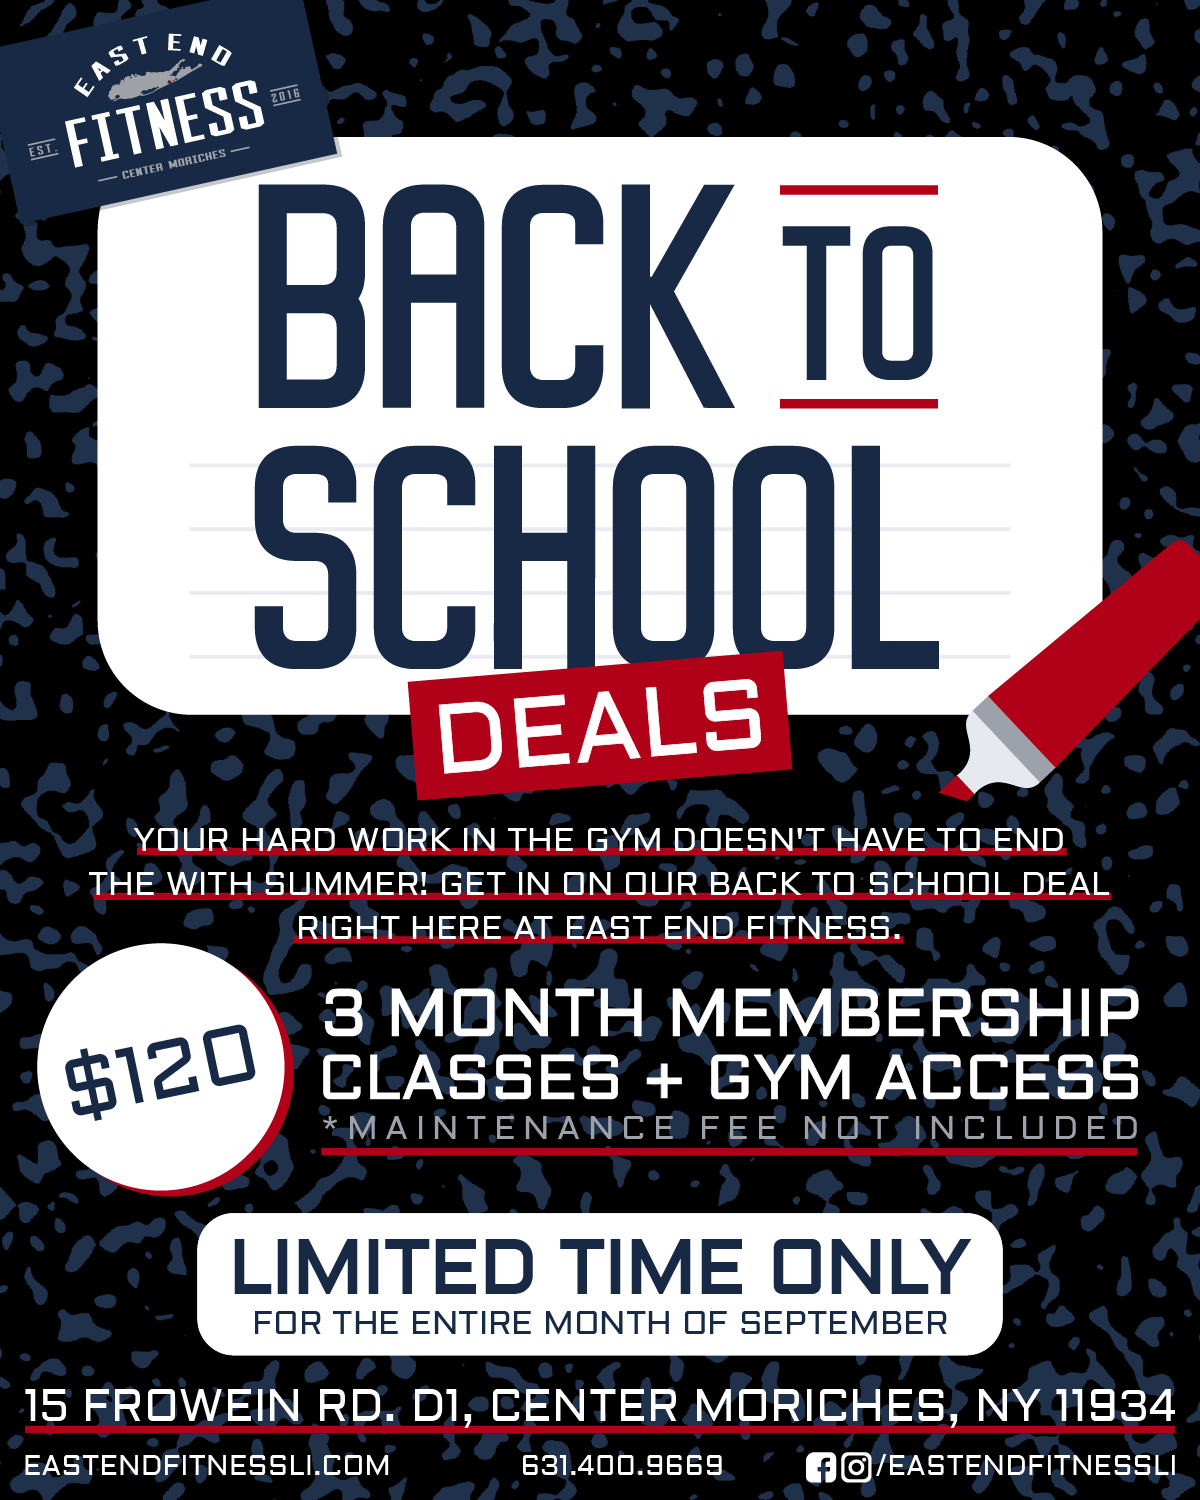 Flyer for Back to School deals, enjoy a 3 month membership with classes and gym access for $120, maintenance fee not included. Only available for the month of September